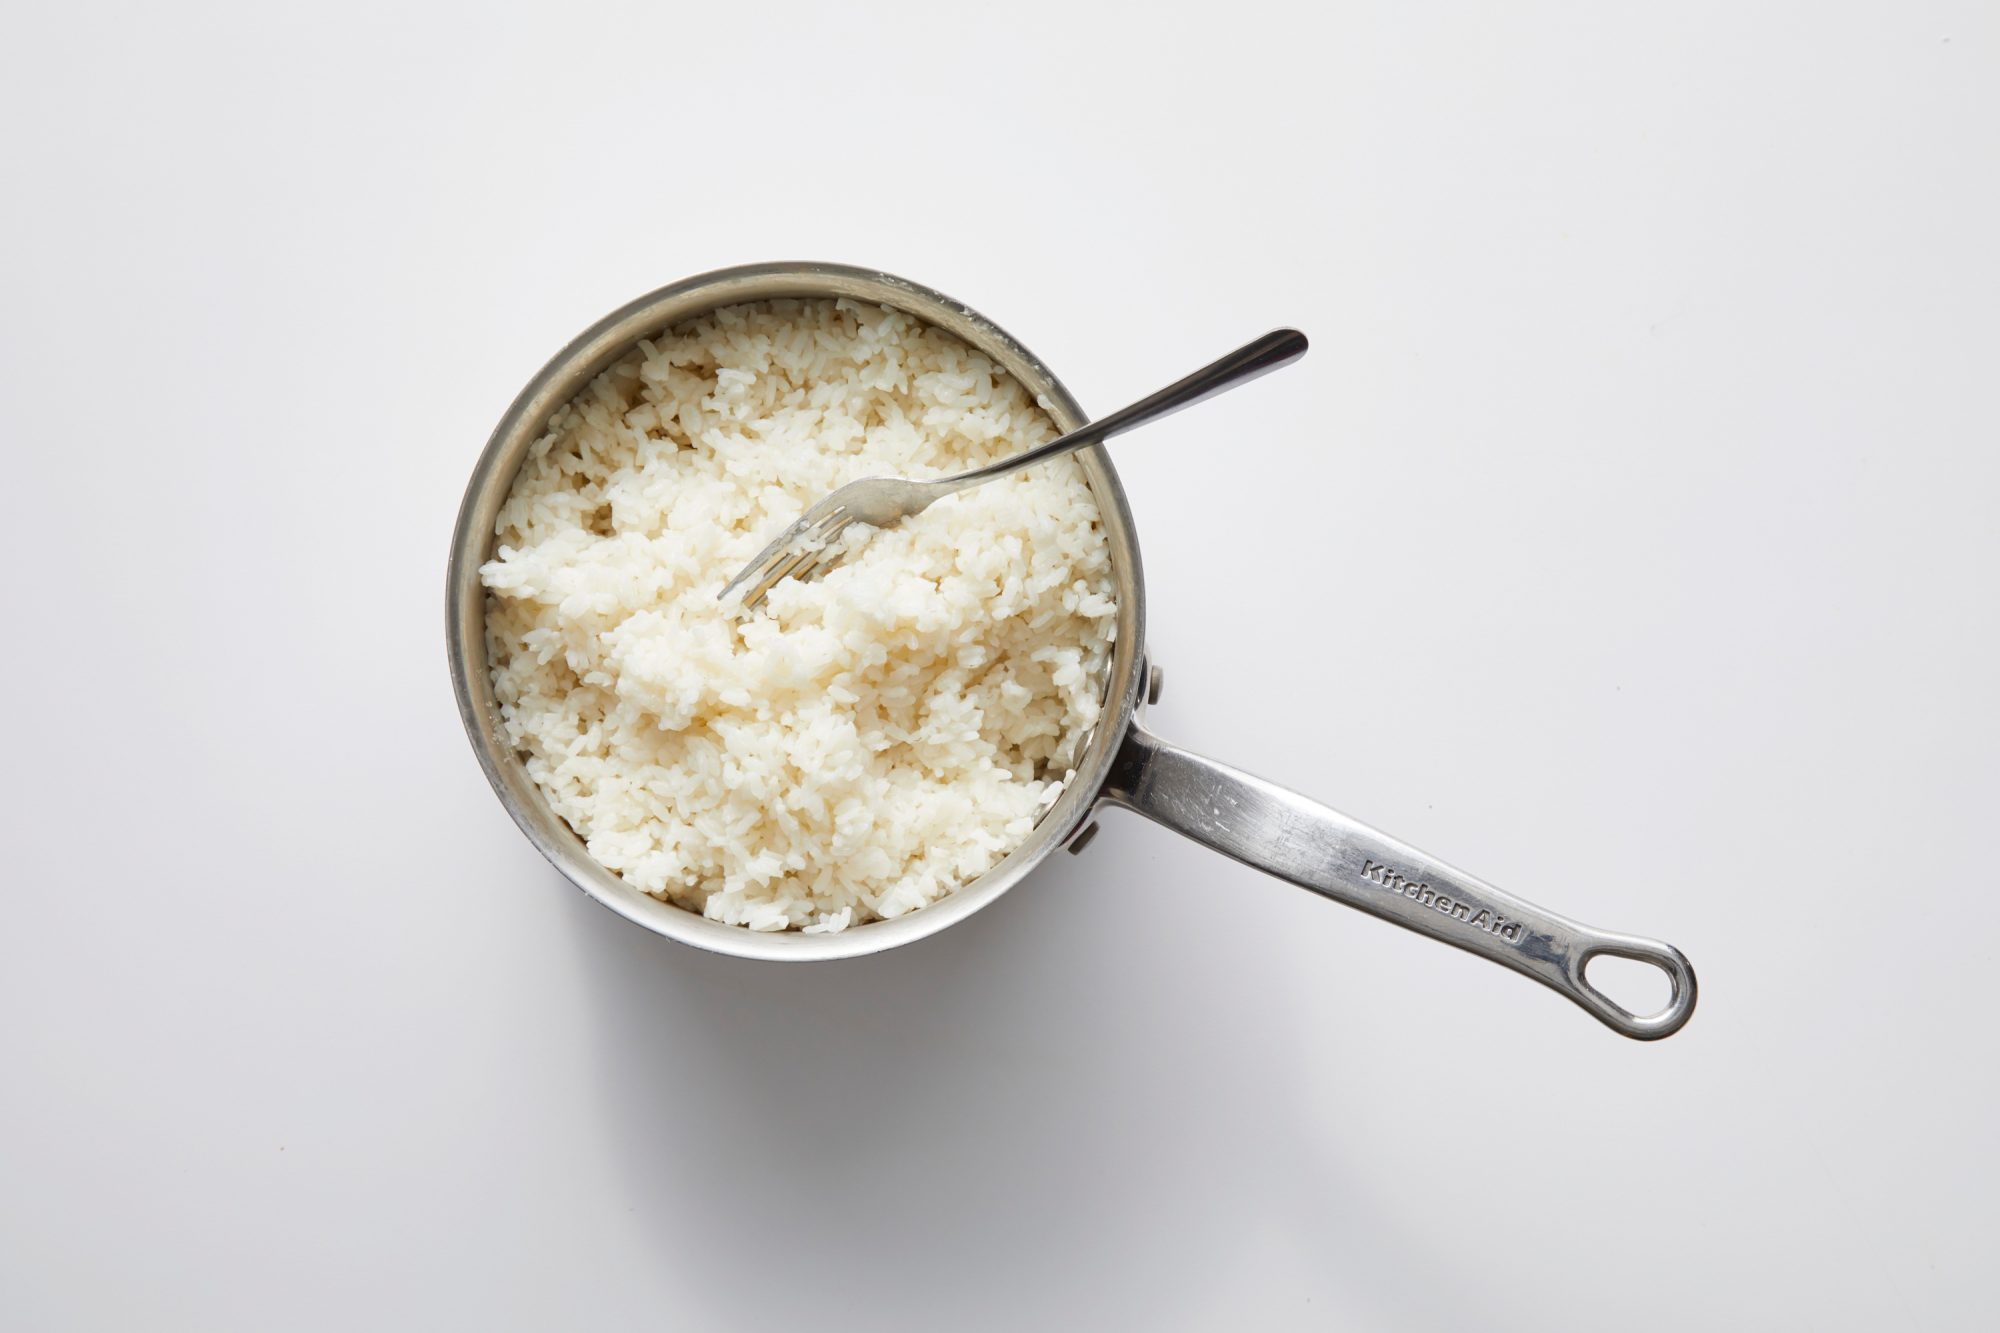 cooked white rice and fork in stainless steel KitchenAid saucepan on white background